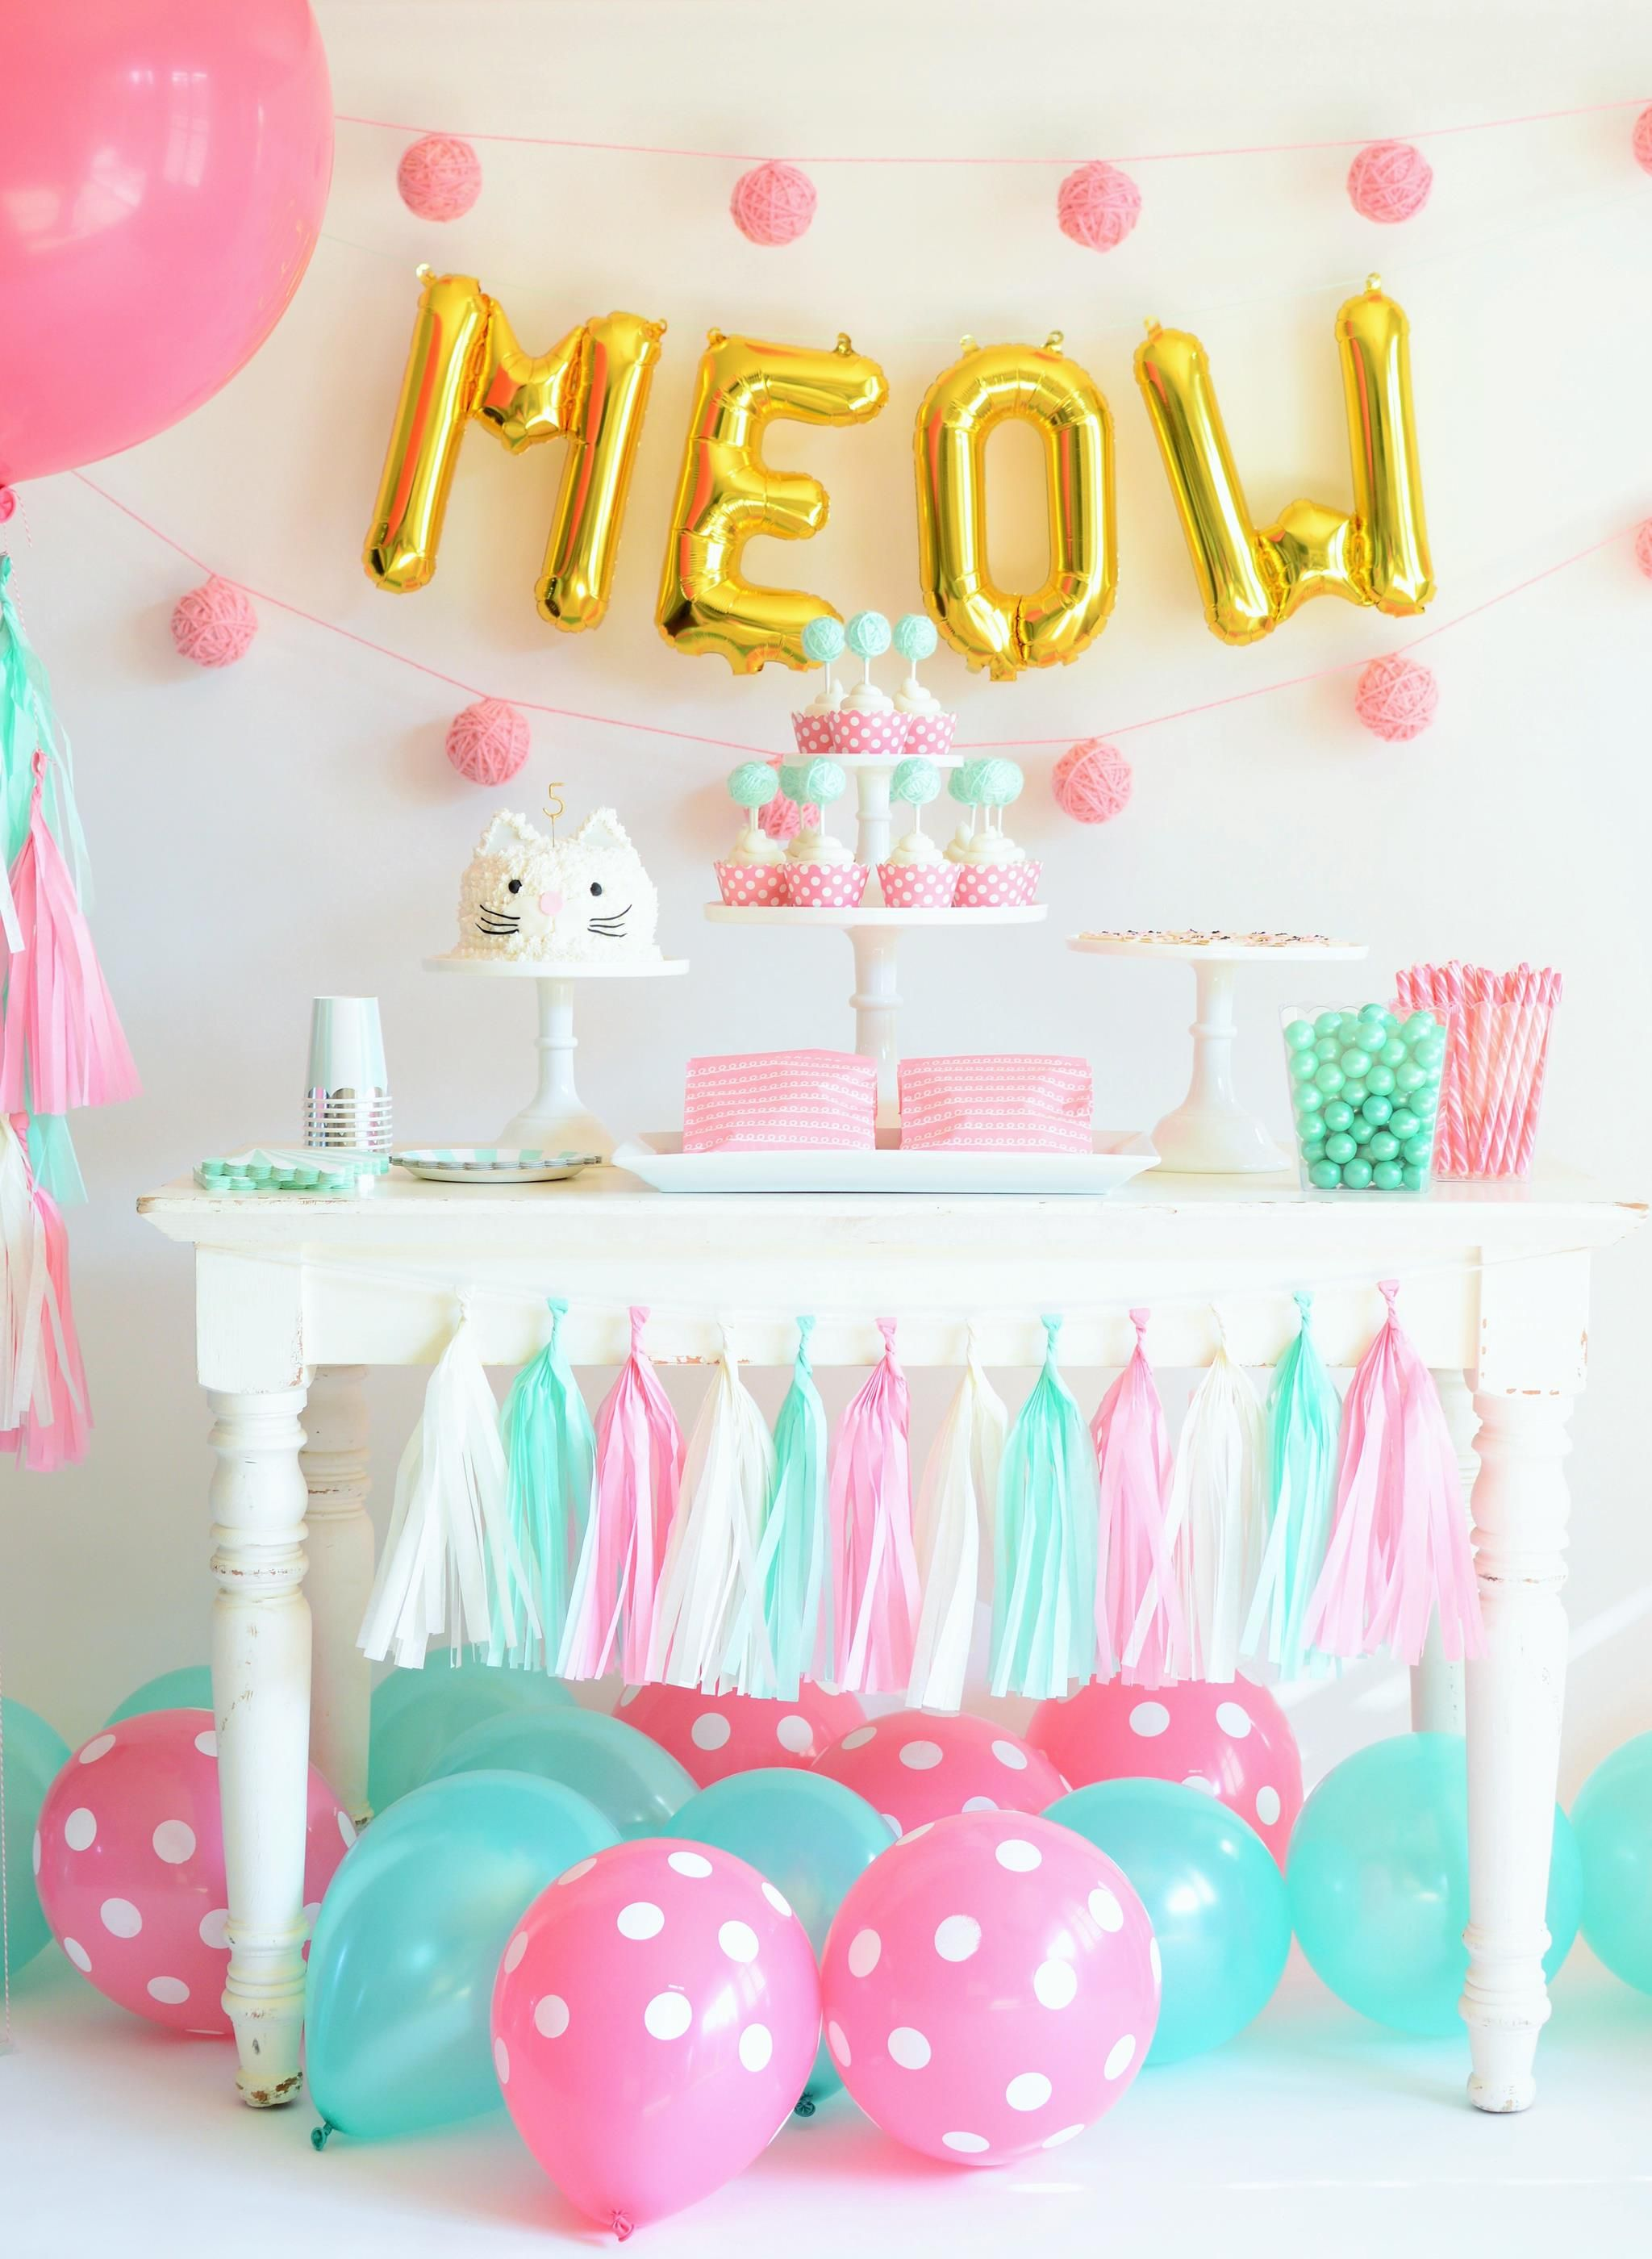 birthday party themes for girls ; 41949d08271ee0a81c403f3946406dea